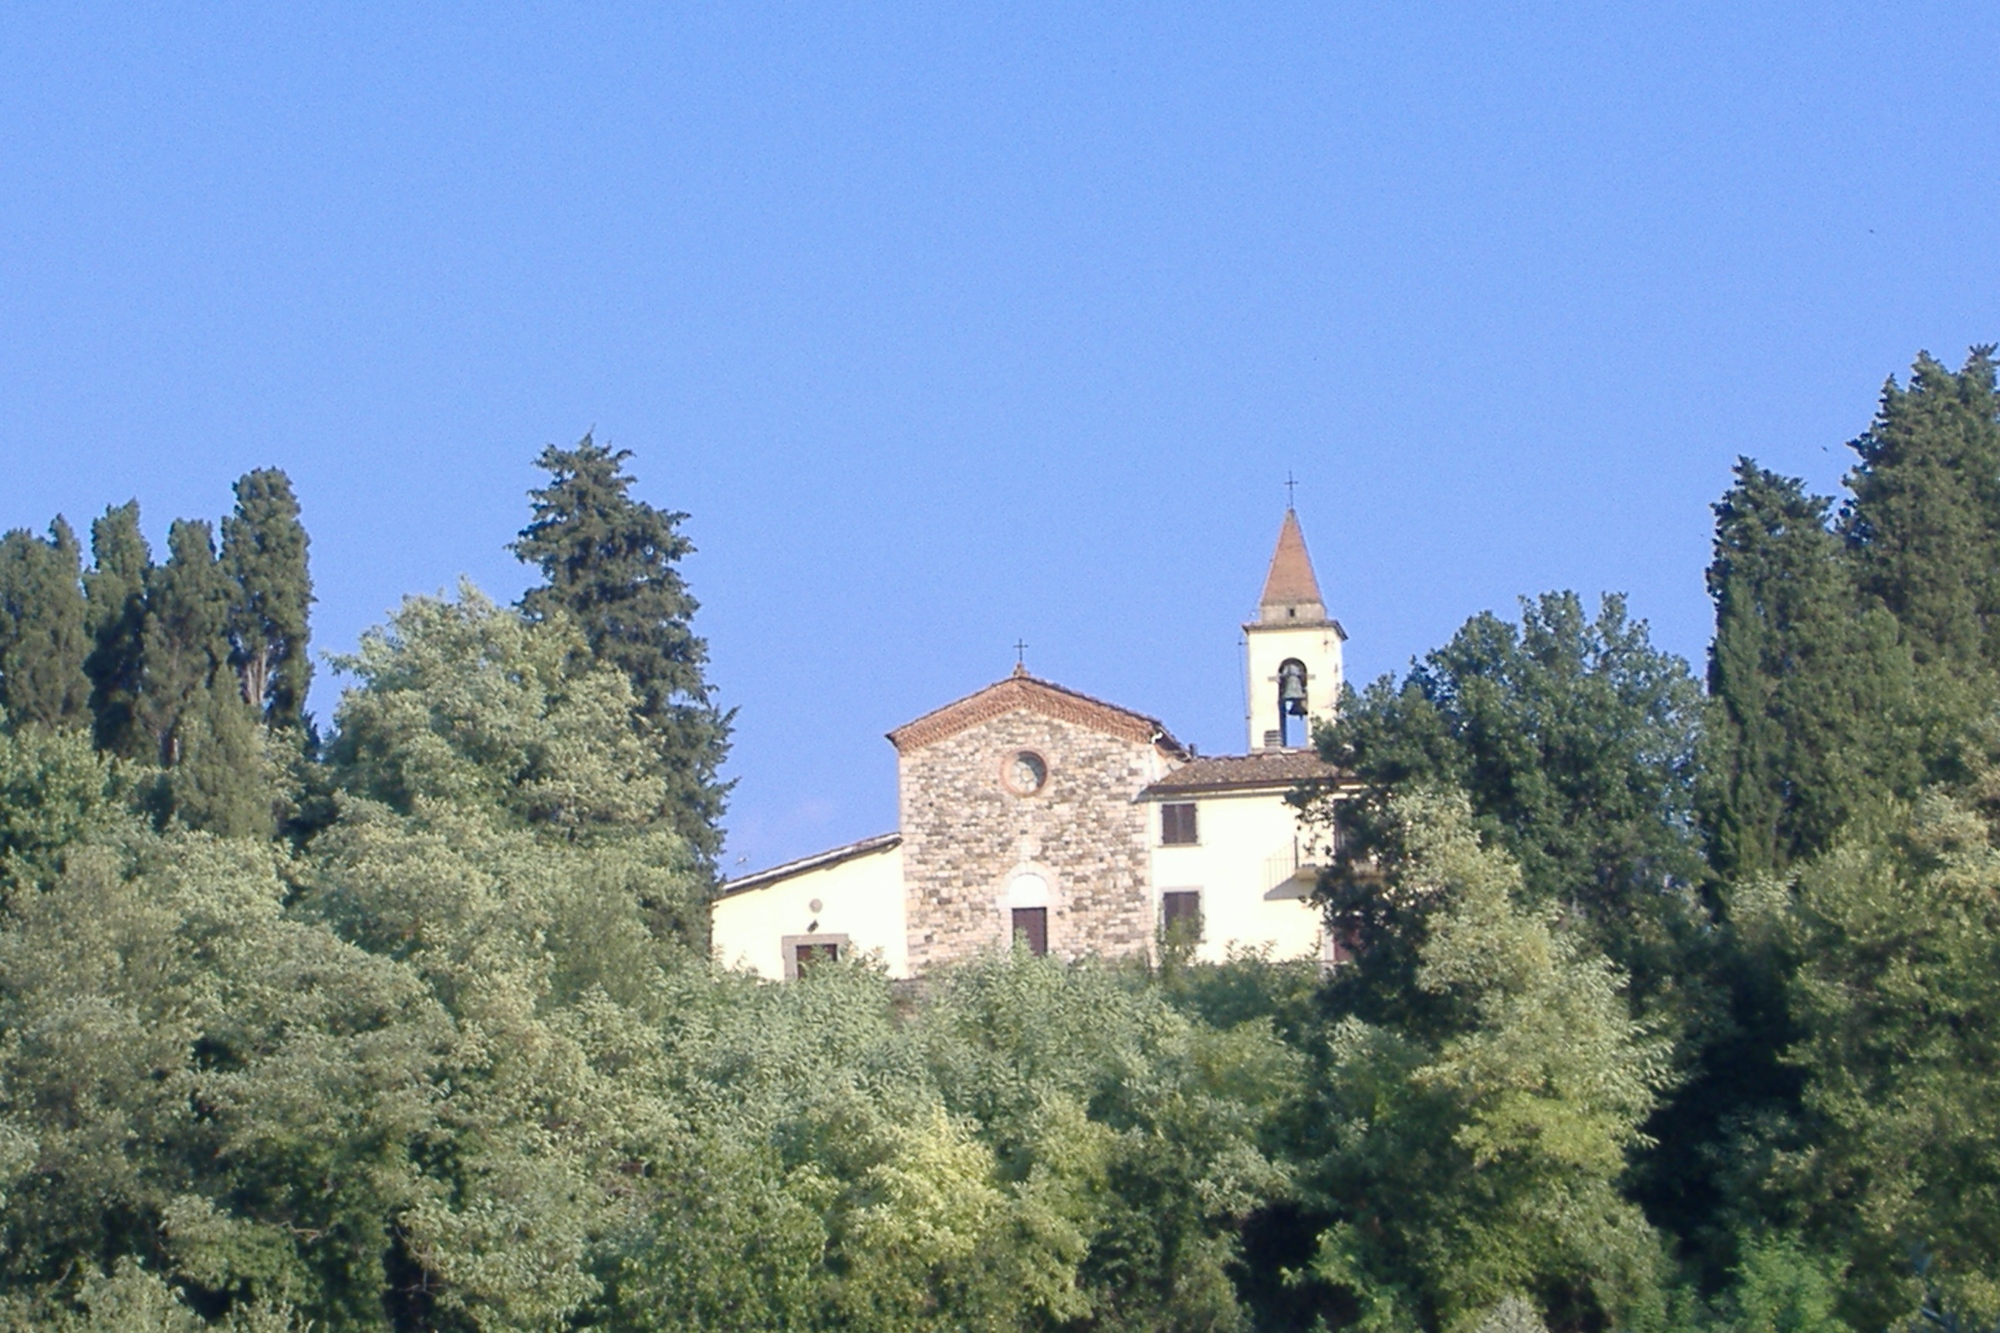 Bagno a ripoli a hiker s guide to the hills of the renaissance